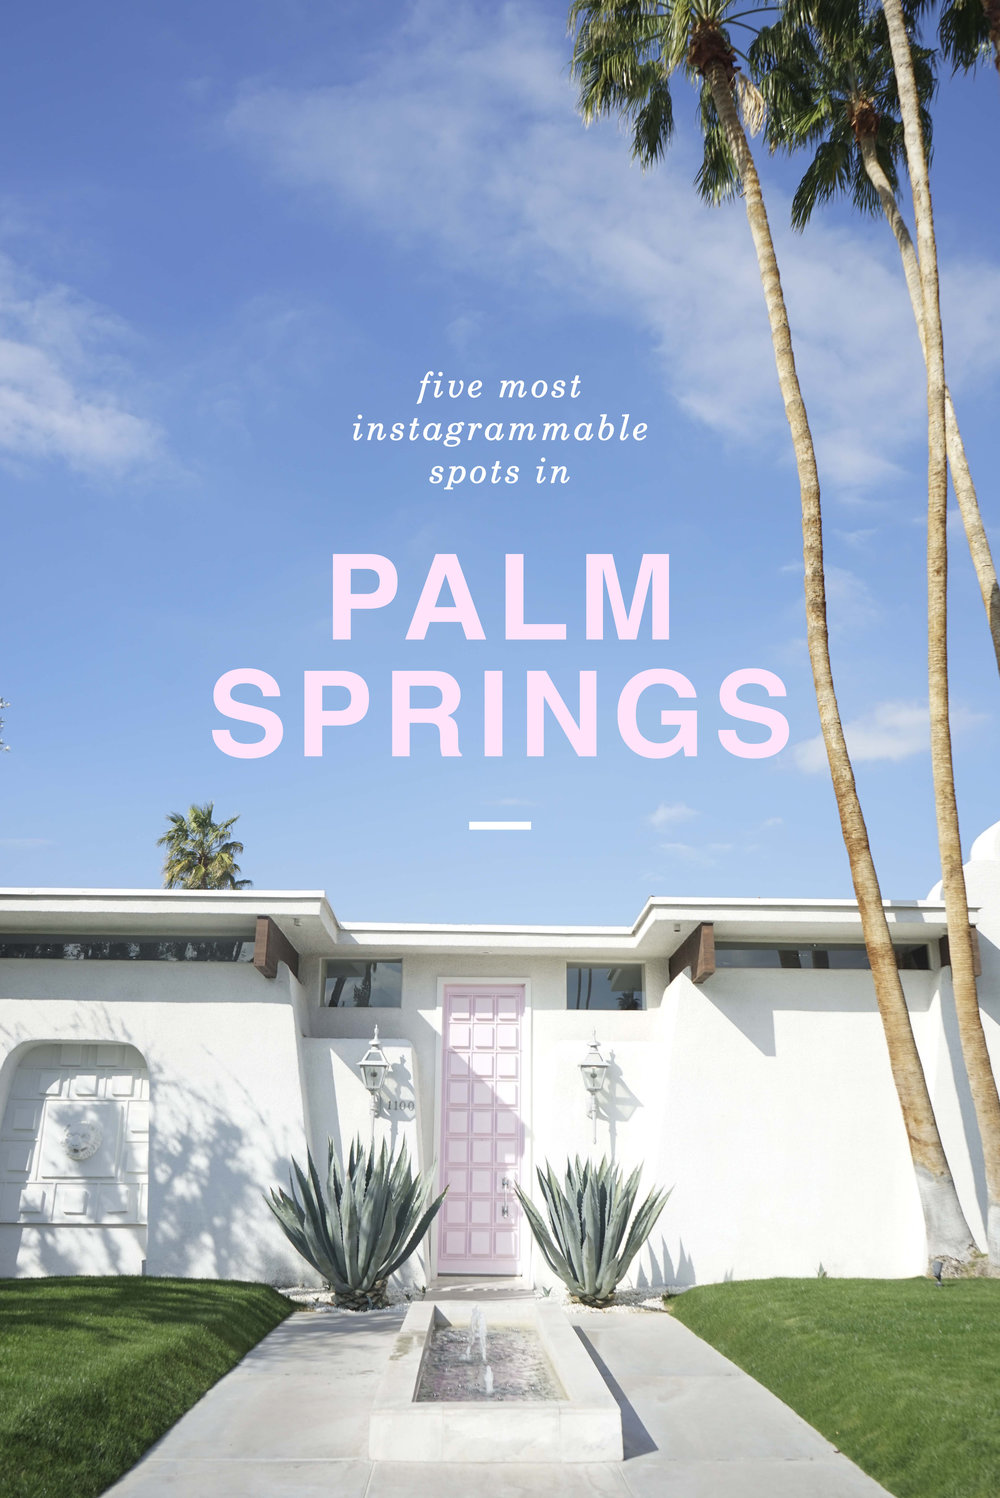 5 Most Instagrammable spots in Palm Springs | Shannon Did What?